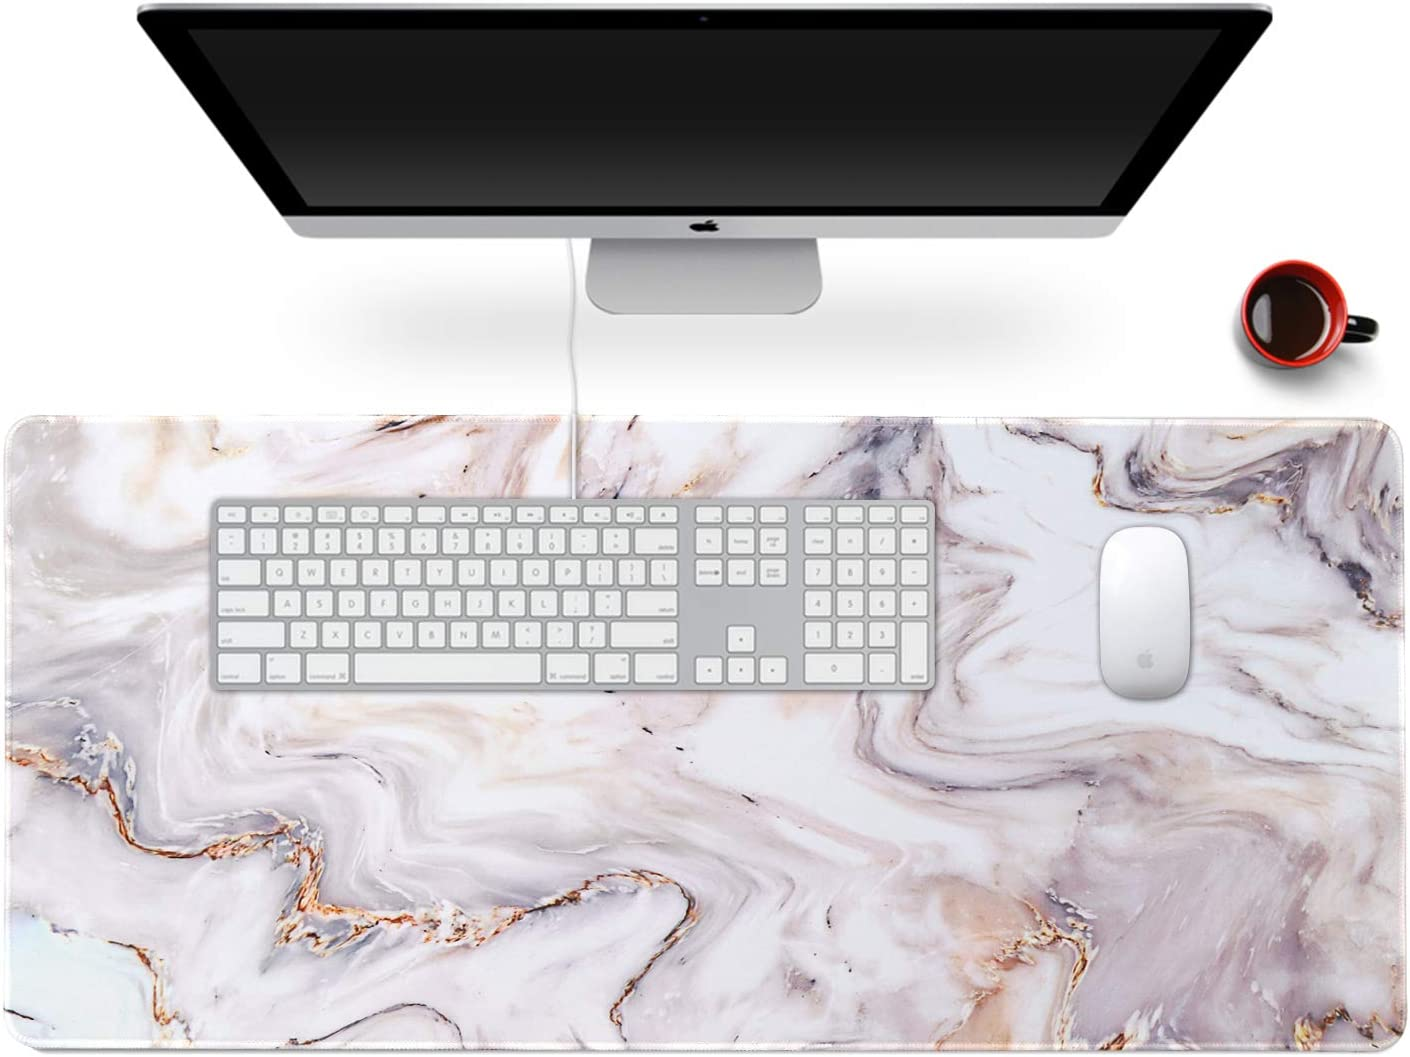 "Anyshock Desk Mat, Extended Gaming Mouse Pad 35.4"" x 15.7"" XXL Keyboard Laptop Mousepad with Stitched Edges Non Slip Base, Water-Resistant Computer Desk Pad for Office and Home (Platinum Marble)"